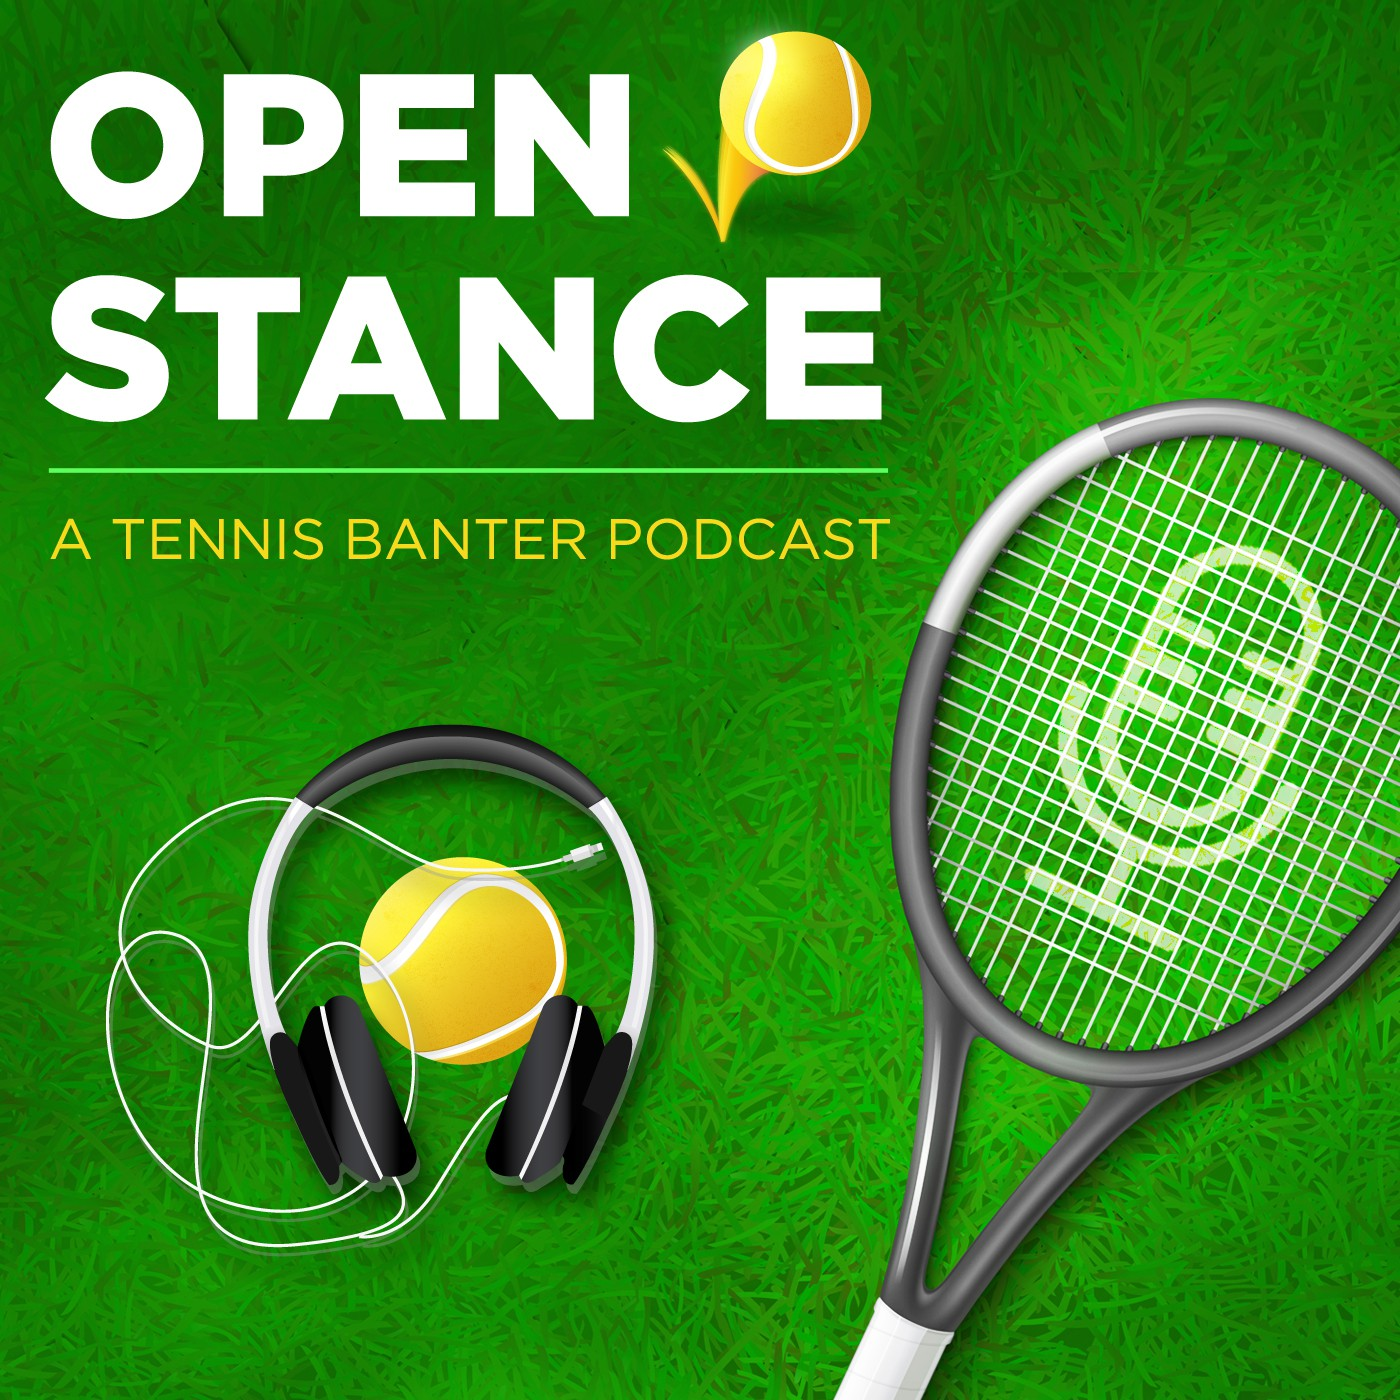 New tennis podcast needs Cover Art!